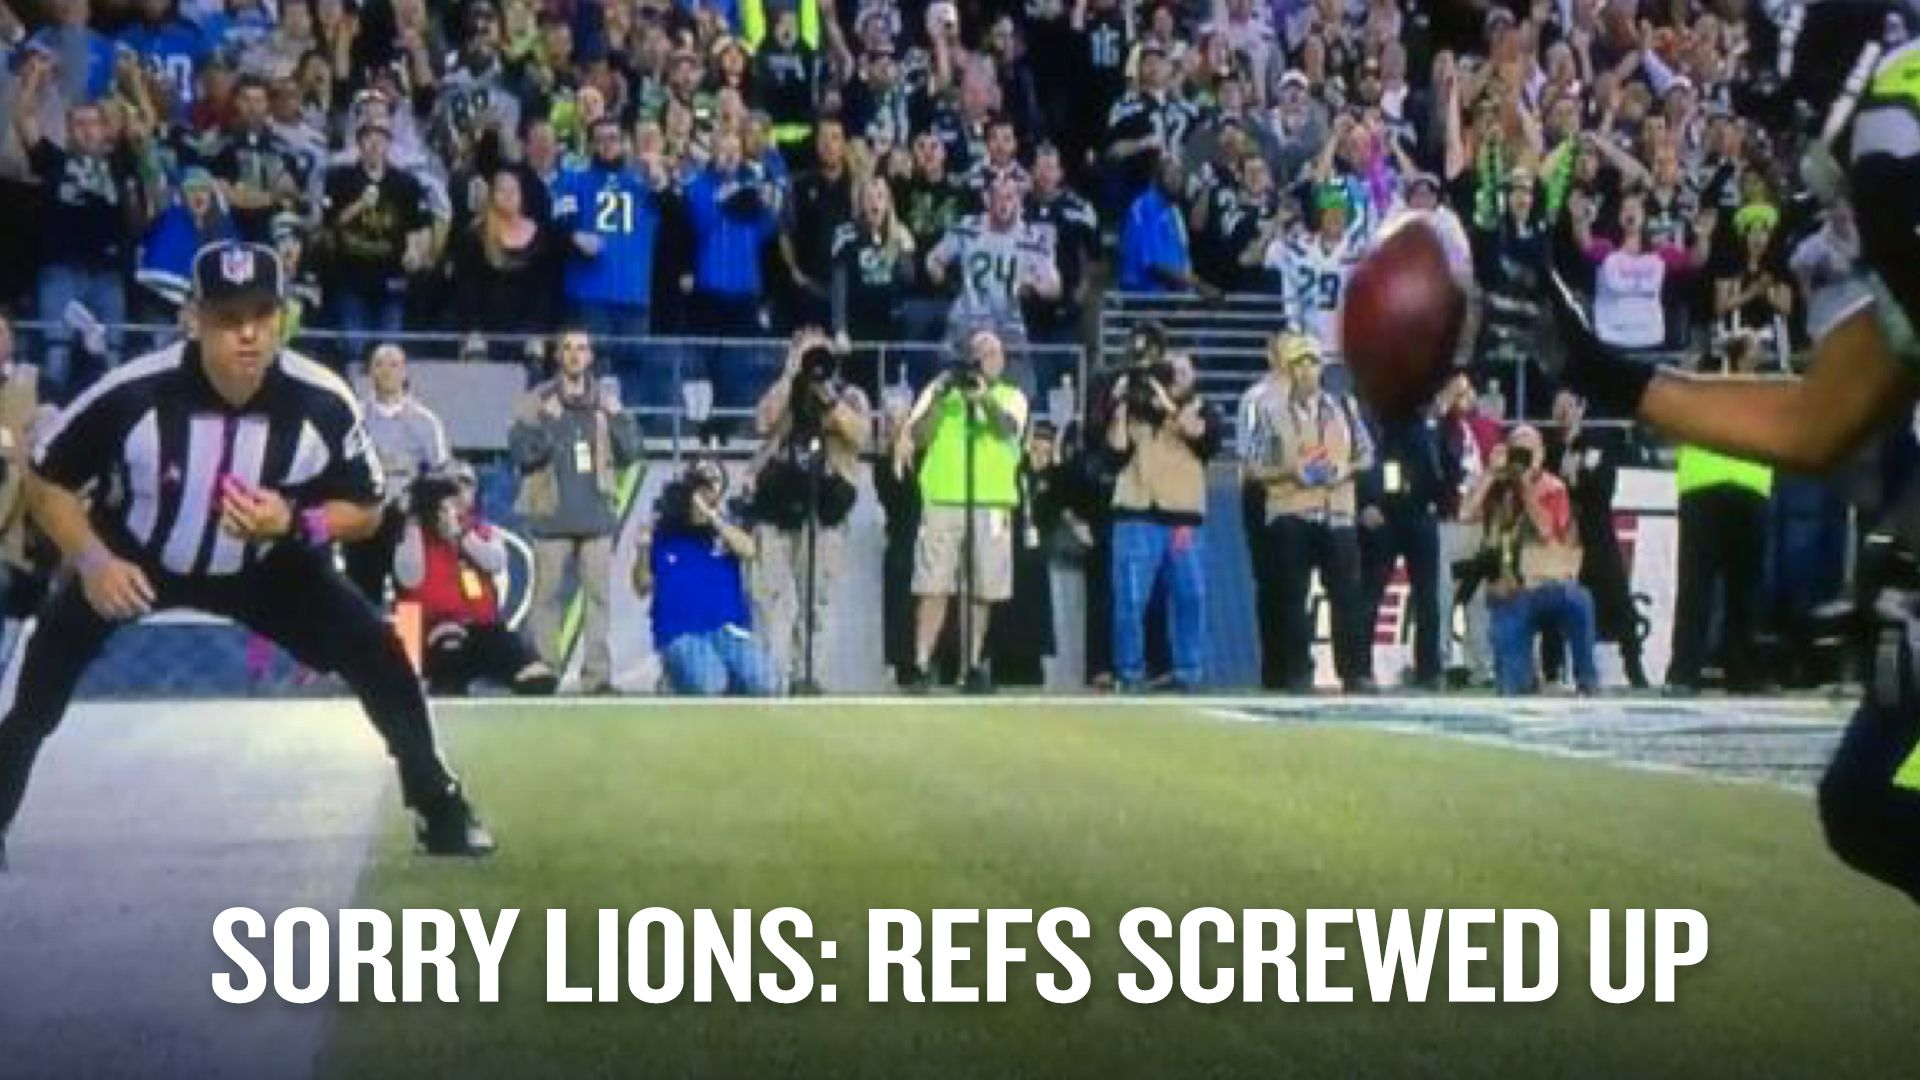 NFL head of officials said referees ruled incorrectly on illegal bat in Seahawks-Lions